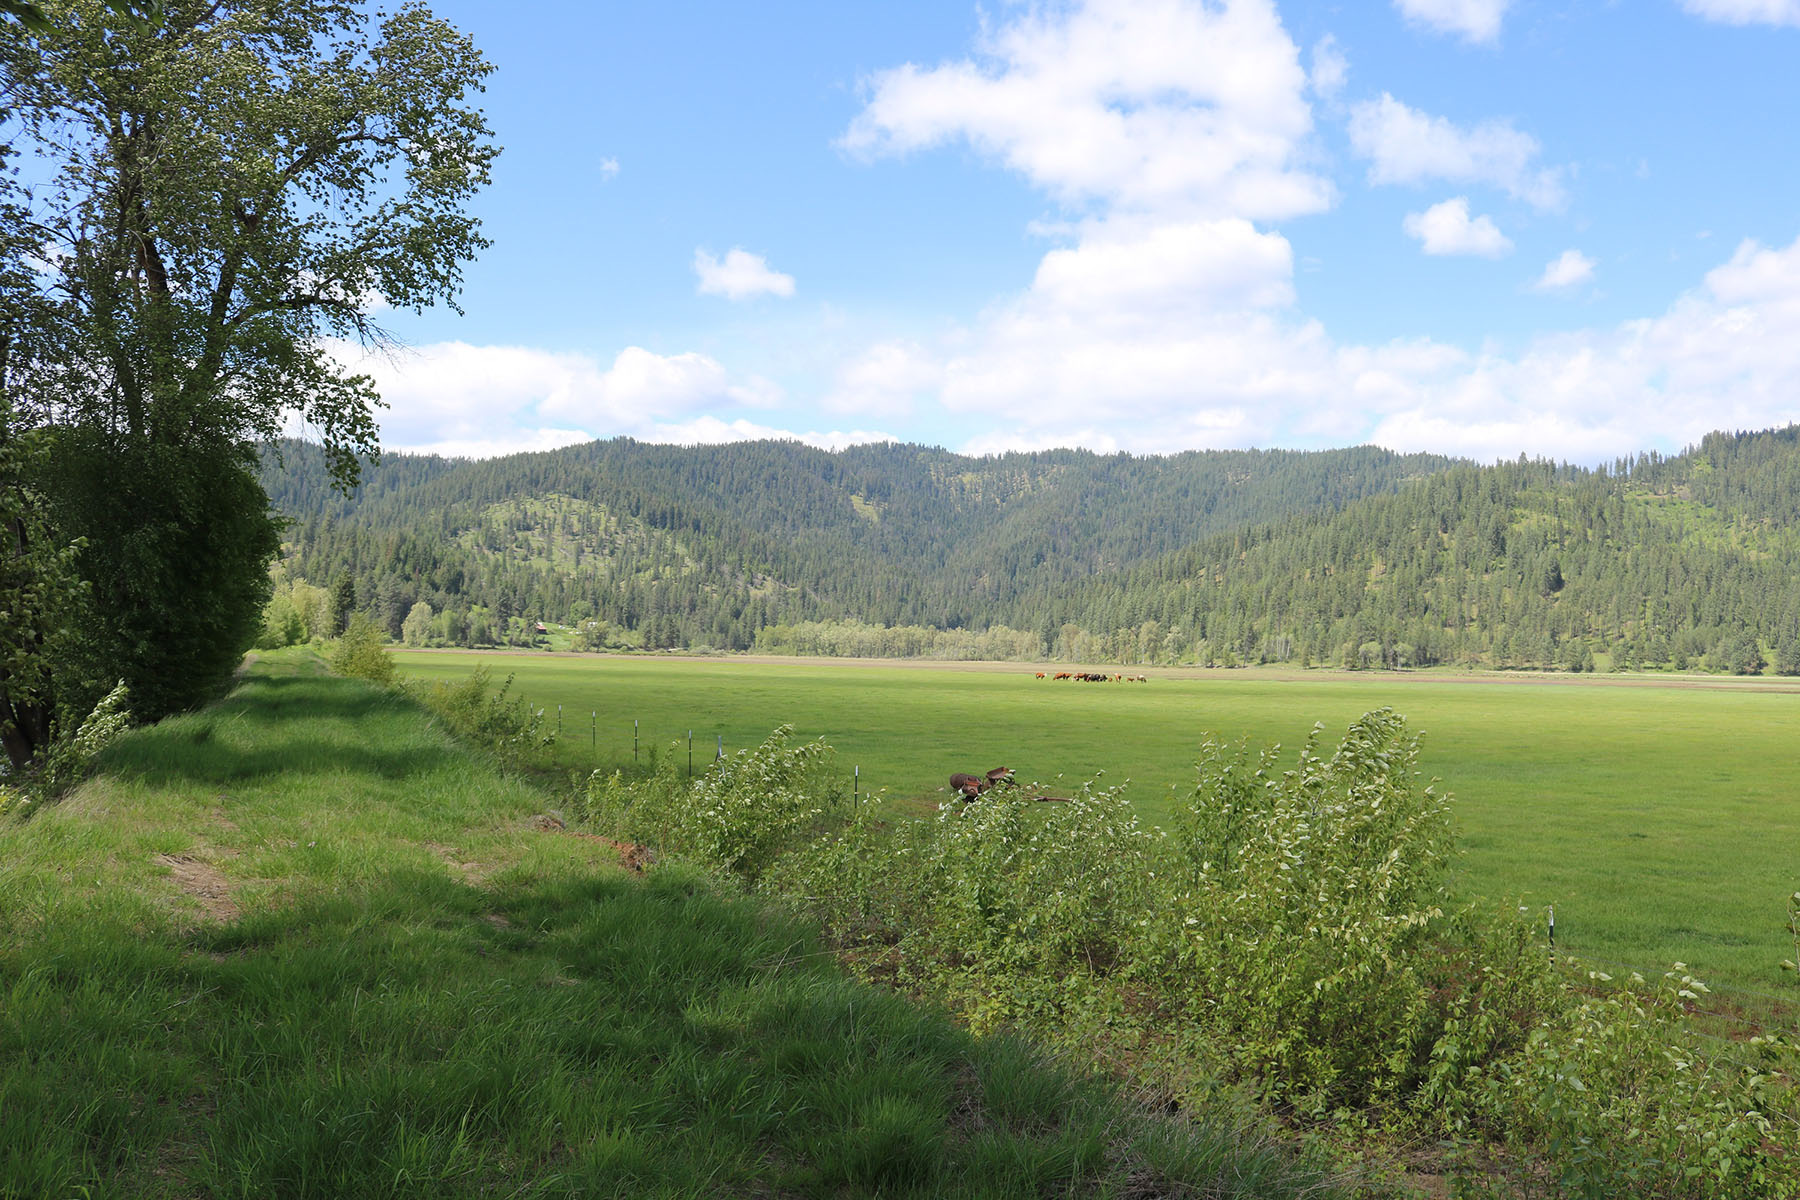 Additional photo for property listing at 3.29 acres with 700' or so frontage on the Coeur d'Alene River NNA Coeur d'Alene River Harrison, Idaho 83810 United States